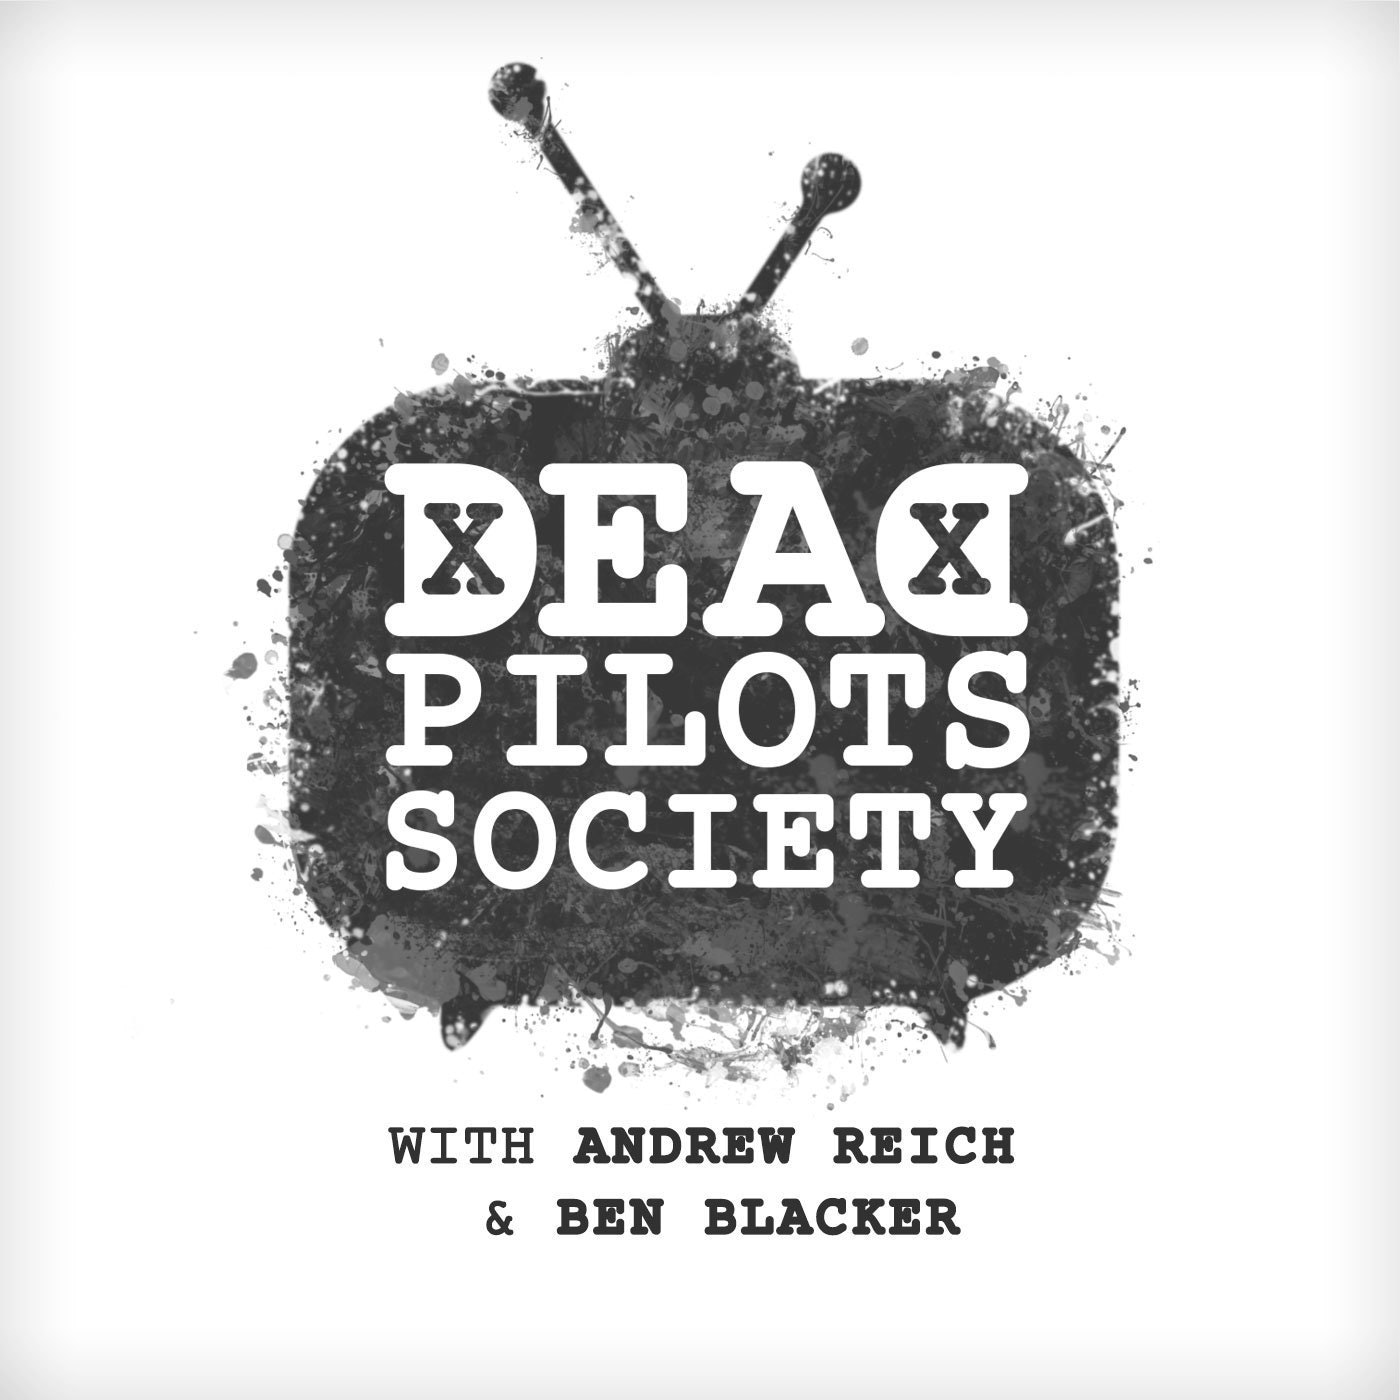 Dead Pilots SocietyEpisode 12 - Punching Out(June 29th, 2017) - In this episode of Dead Pilots Society, Ben Blacker interviews Jonathan Goldstein & John Francis Daley (Spider-Man: Homecoming, Horrible Bosses) regarding their dead pilot, Punching Out. You'll also listen to a never-before-heard live table read of Punching Out performed by some of today's funniest comedic actors.